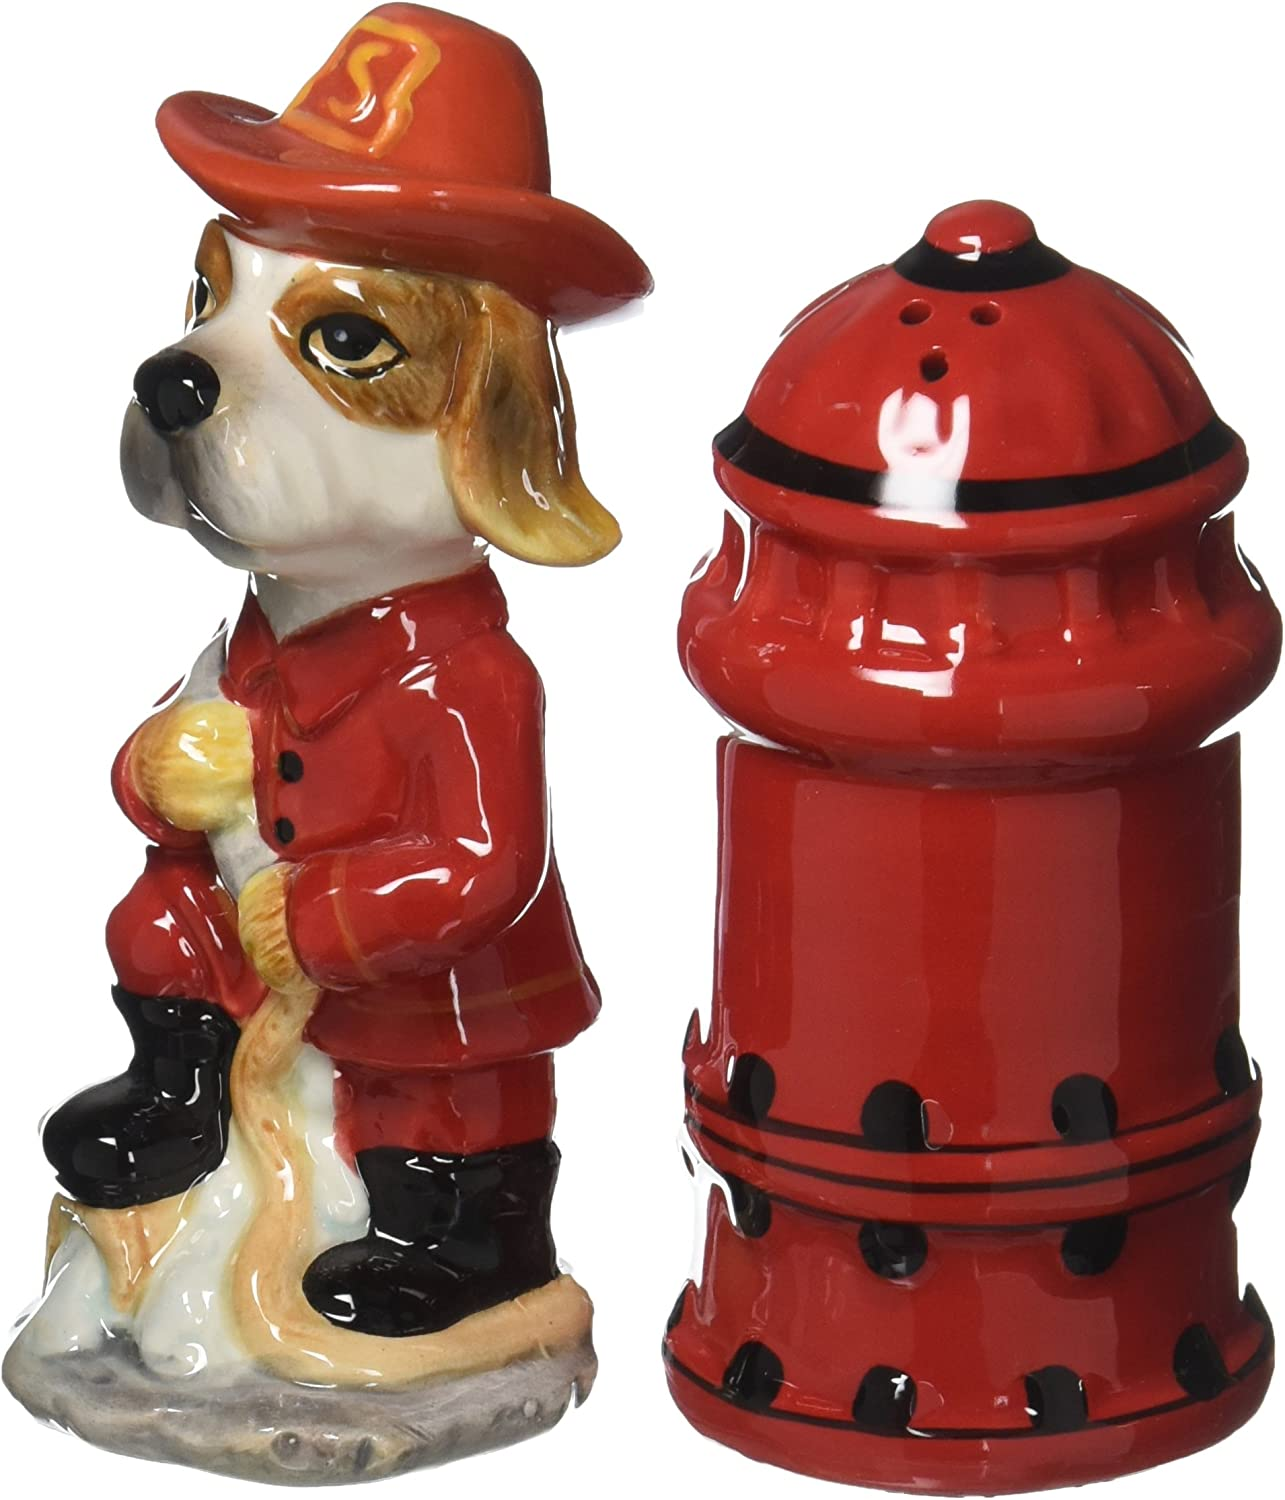 Appletree Fire Fighter Salt and Pepper Shaker Set